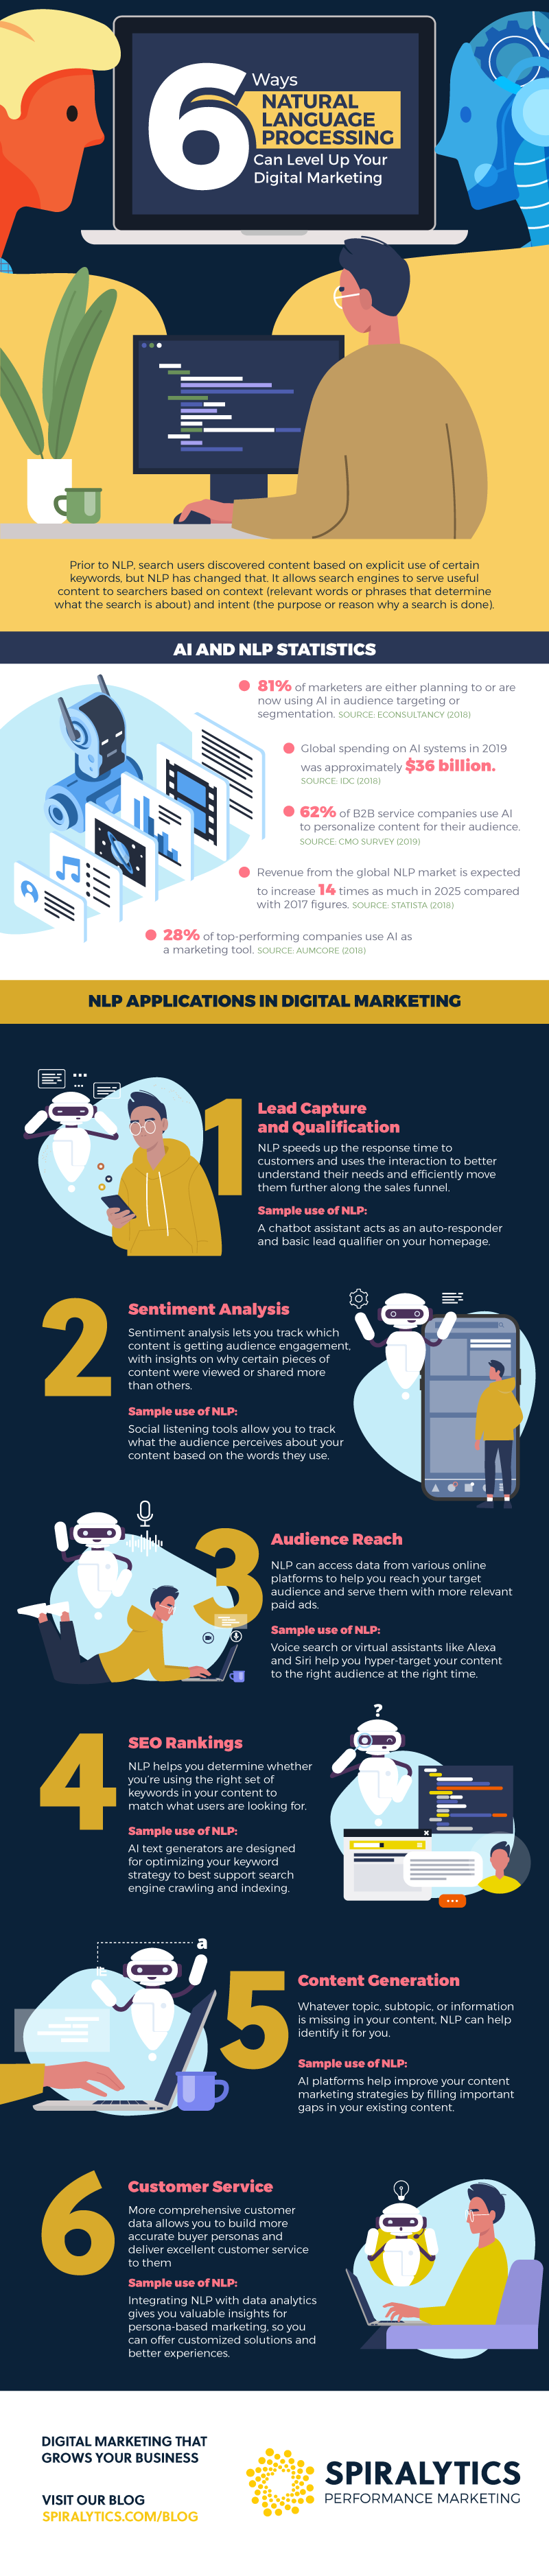 [Infographic] 6 Ways Natural Language Processing Can Level Up Your Digital Marketing